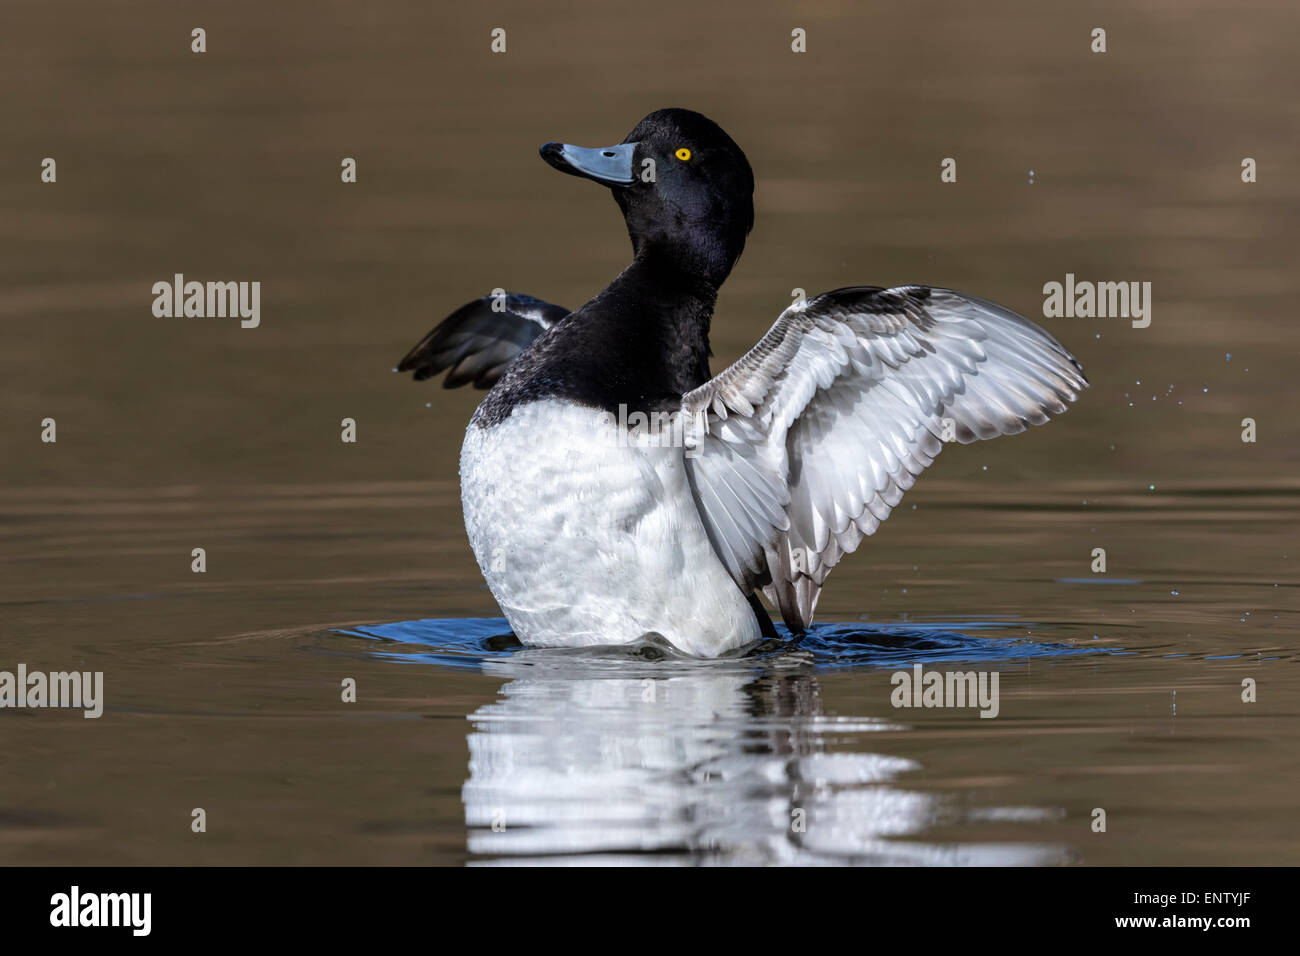 Male Tufted Duck flapping wings - Stock Image